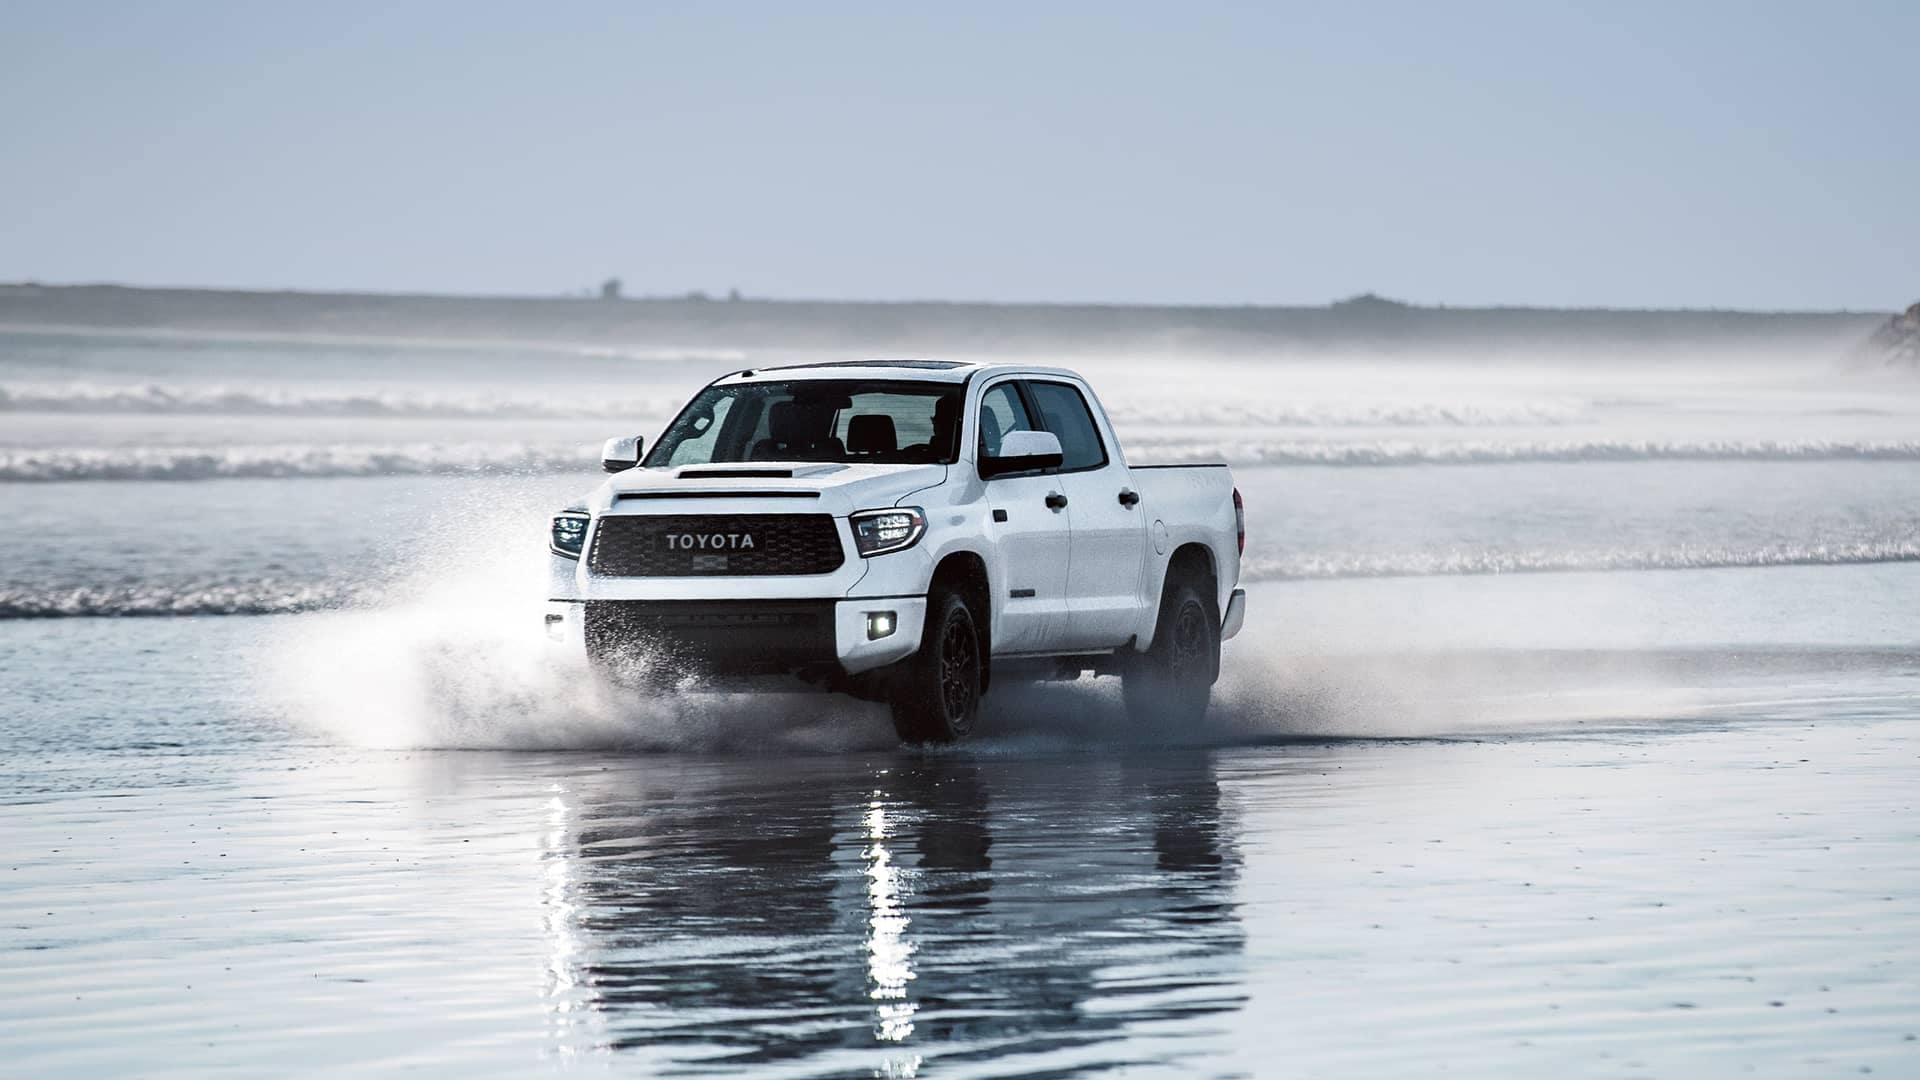 Truck driving through water on beach